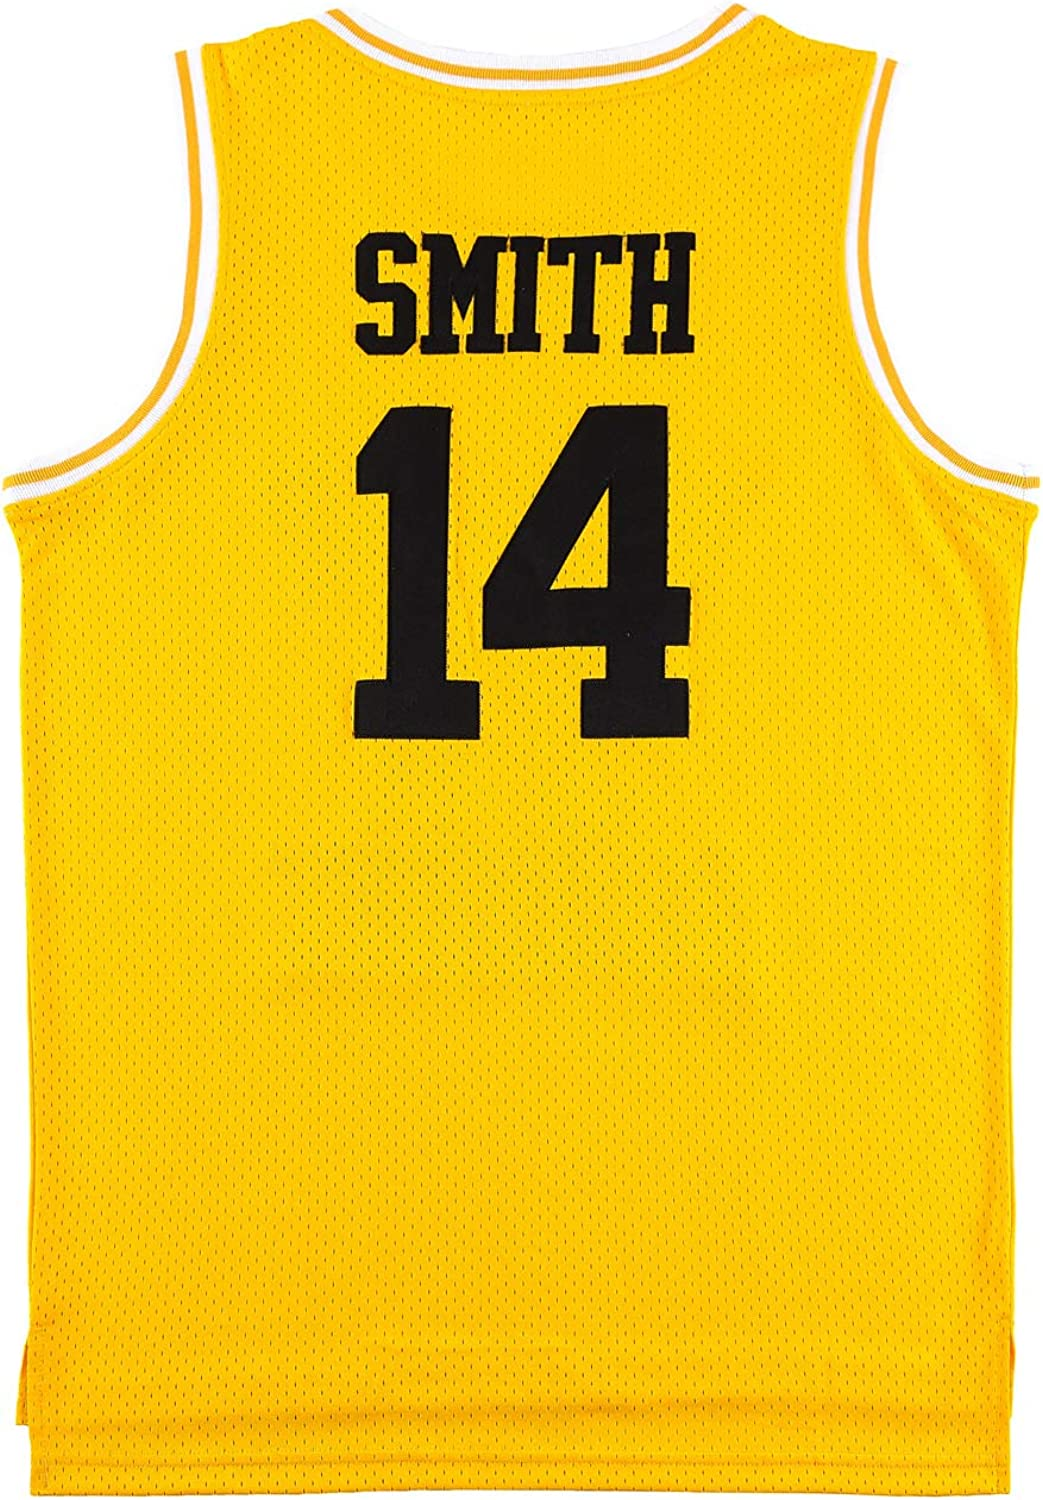 OKnown Mens Jerseys #14 Basketball Jersey Green/Yellow/Black